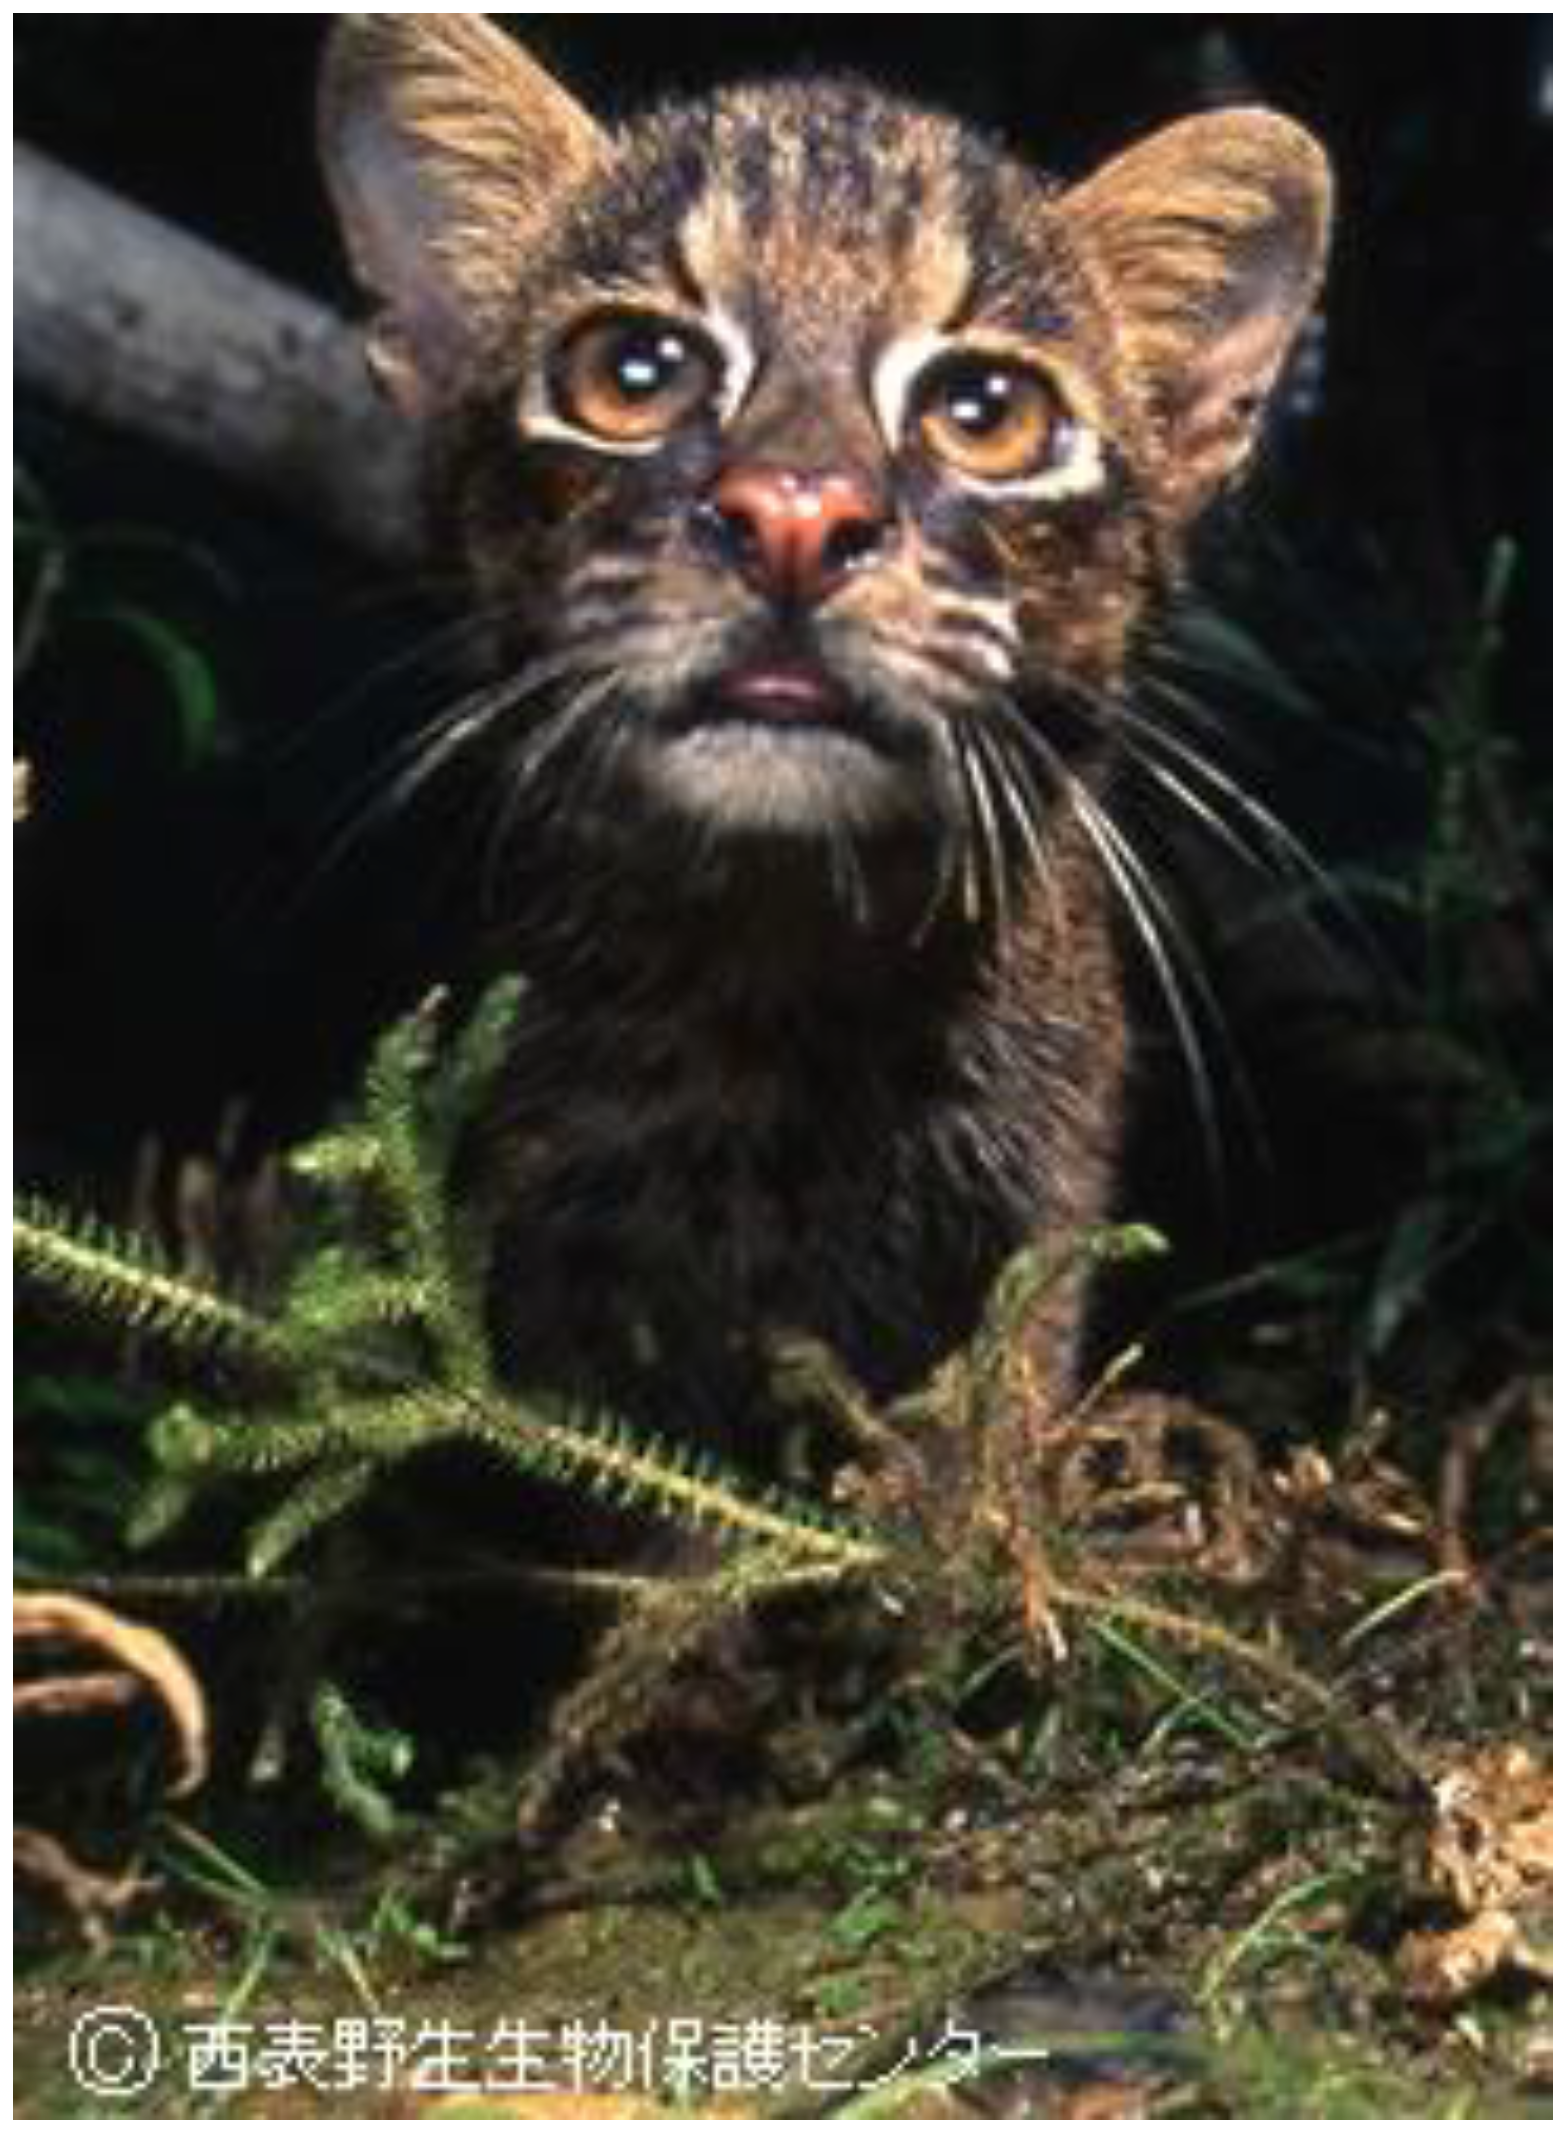 endangered animal iriomote wild cat essay Category: environment environmental pollution essay title: environment essay: we can stop the extinction of endangered species.